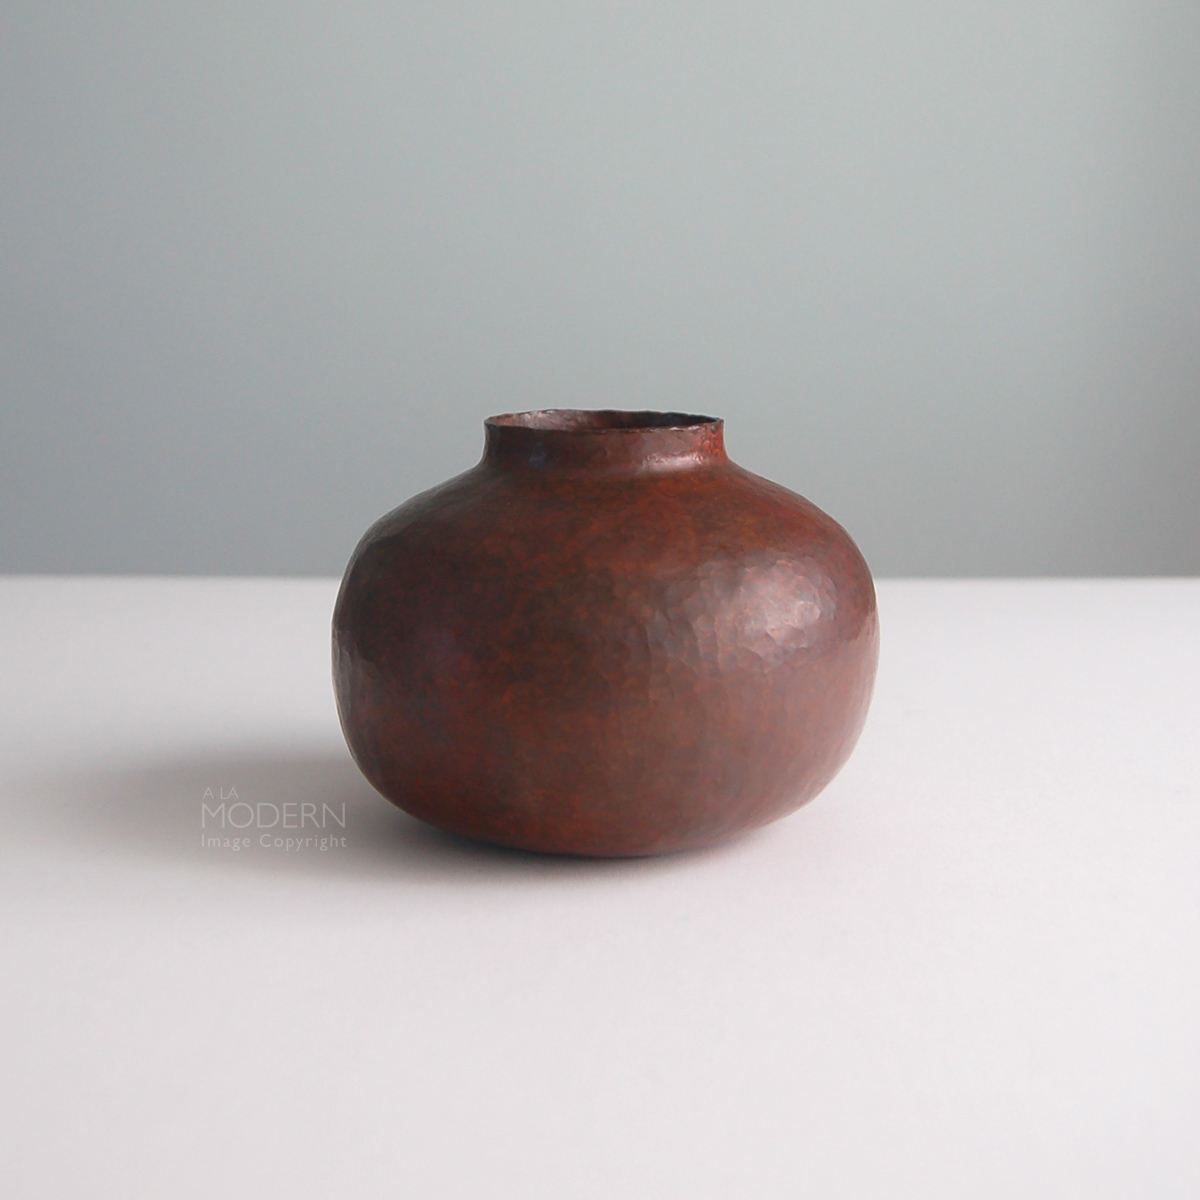 Ramon ramirez mexican copper hammered arts crafts vase on a la modern a beautiful arts and crafts style hammered copper vase by mexican metalsmith ramon ramirez wonderful bulbous small form with thin edge and mouth reviewsmspy